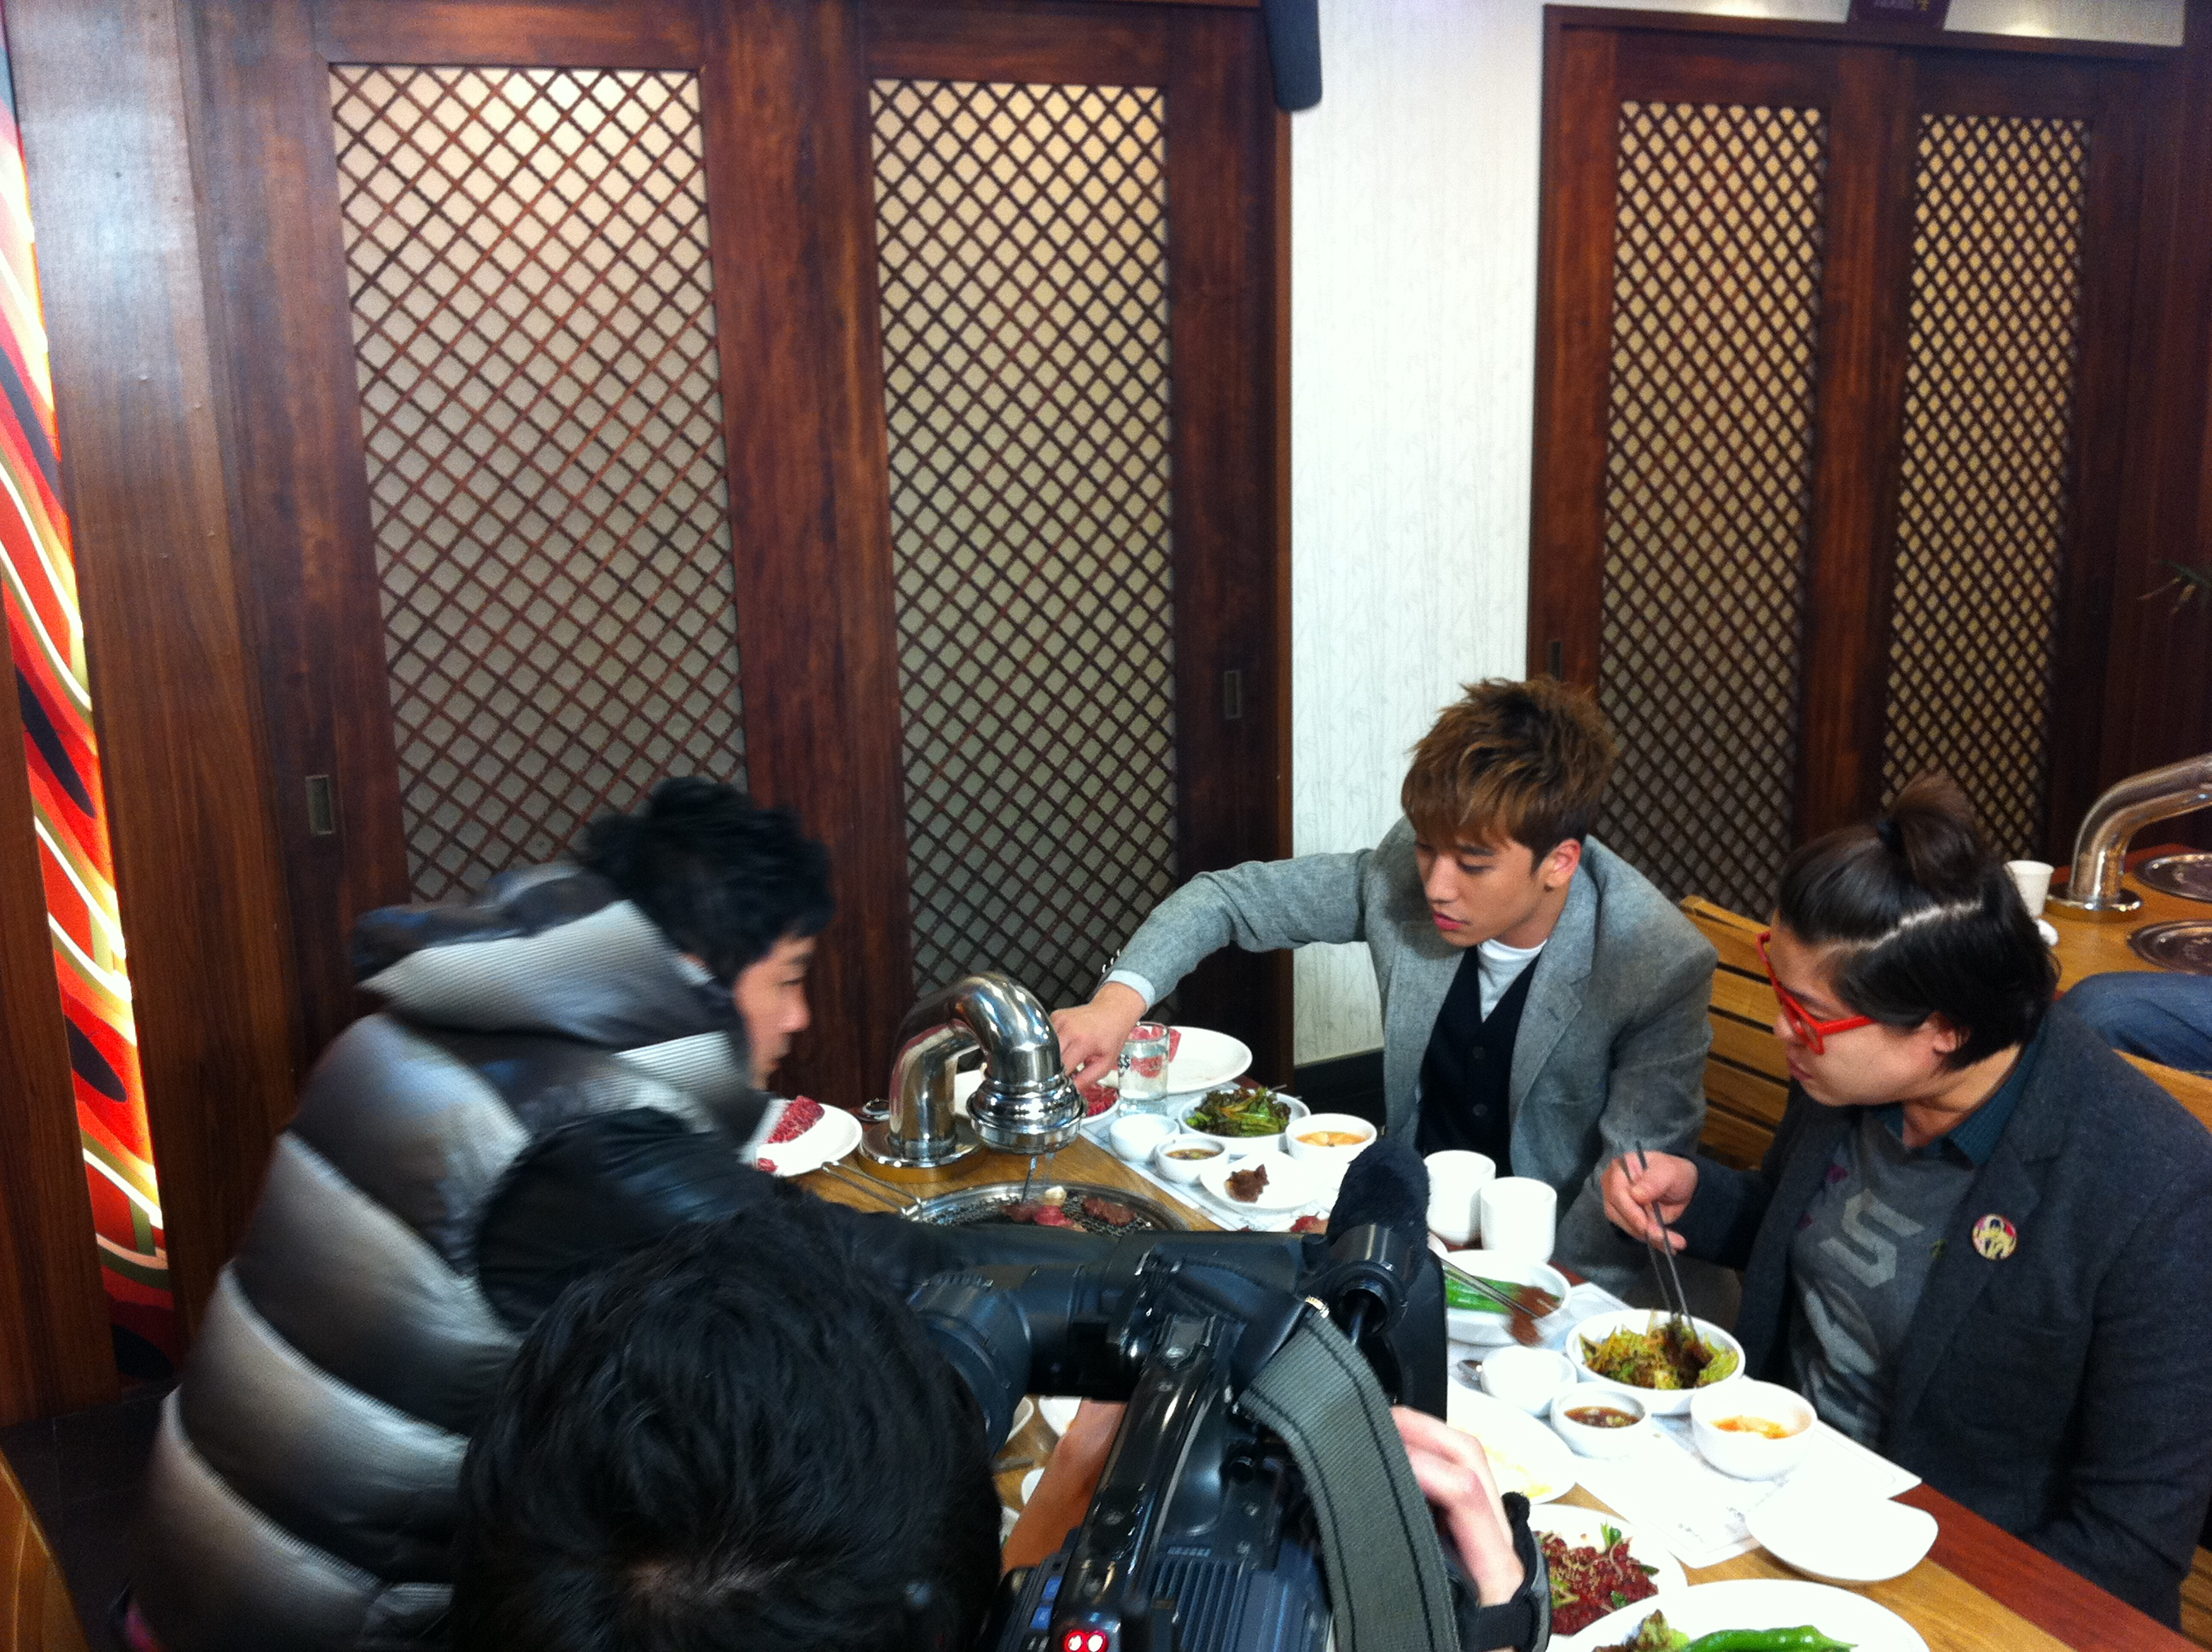 Seung Ri - tvN Taxi - Yeongcheon Younghwa Restaurant - 06feb2011 - 05.jpg